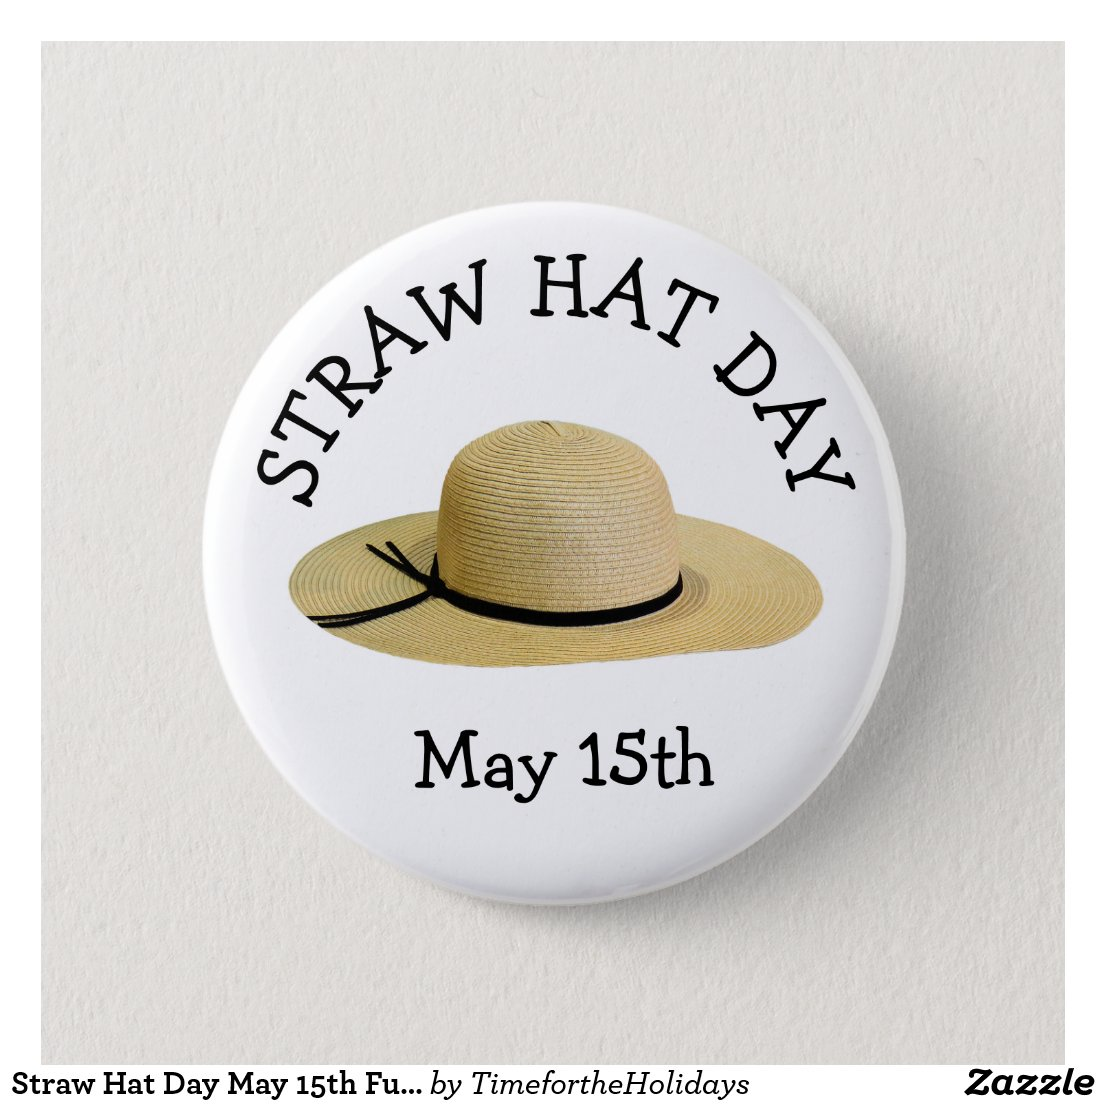 Straw Hat Day May 15th Funny Holiday Button